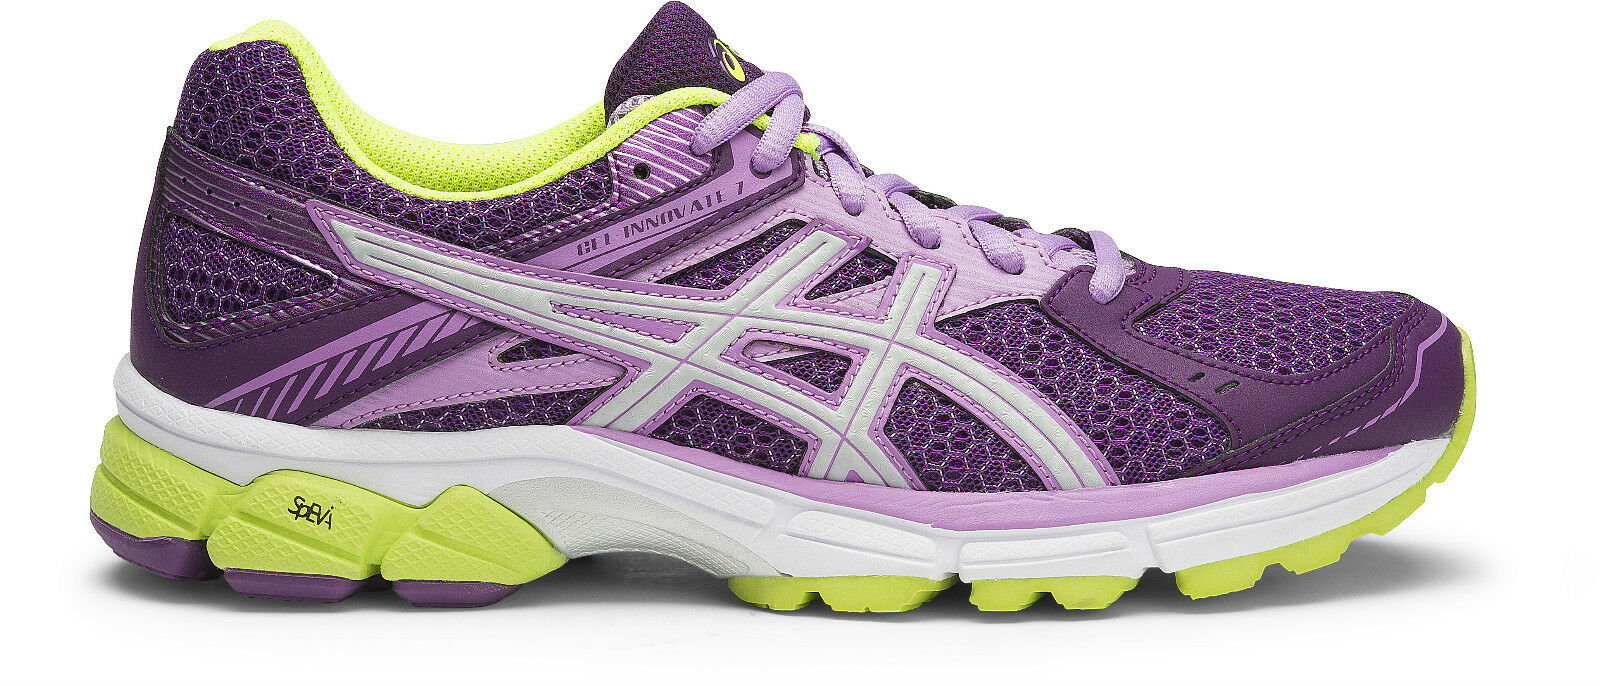 Asics Gel + Innovate 7 Damenschuhe Running Schuhes (B) (3393) + Gel Free Aus Delivery 6d46c0